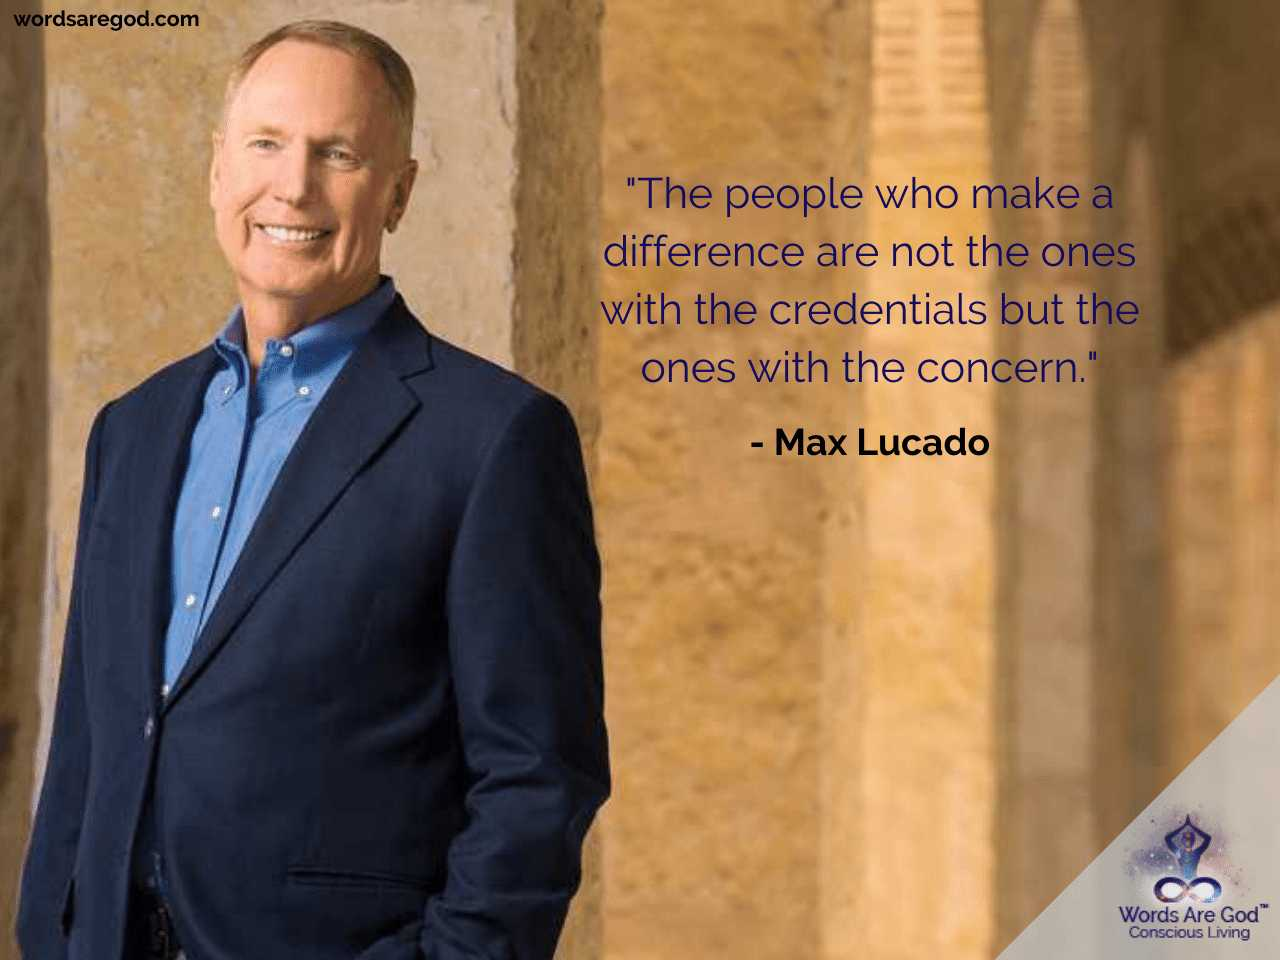 Max Lucado Inspirational Quotes